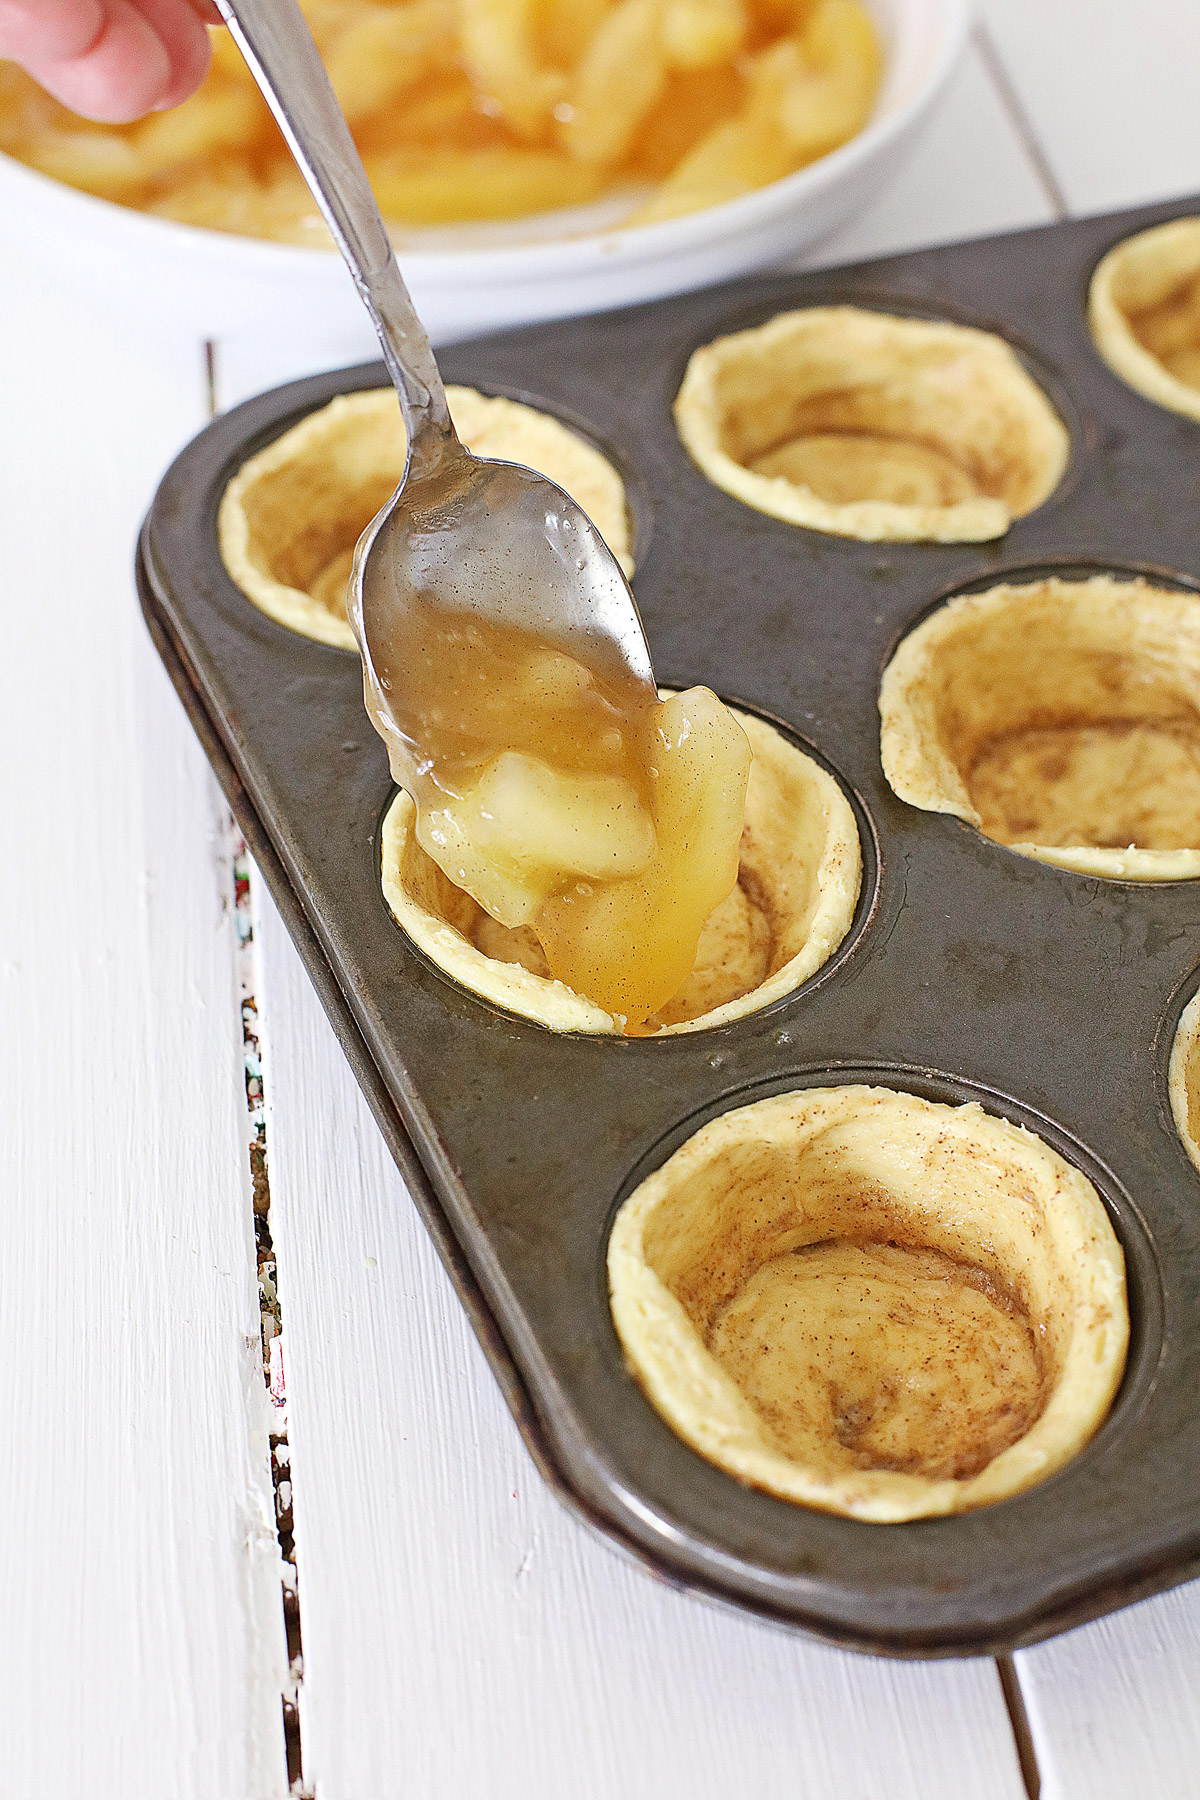 spooning apple pie filling into cinnamon muffin cups